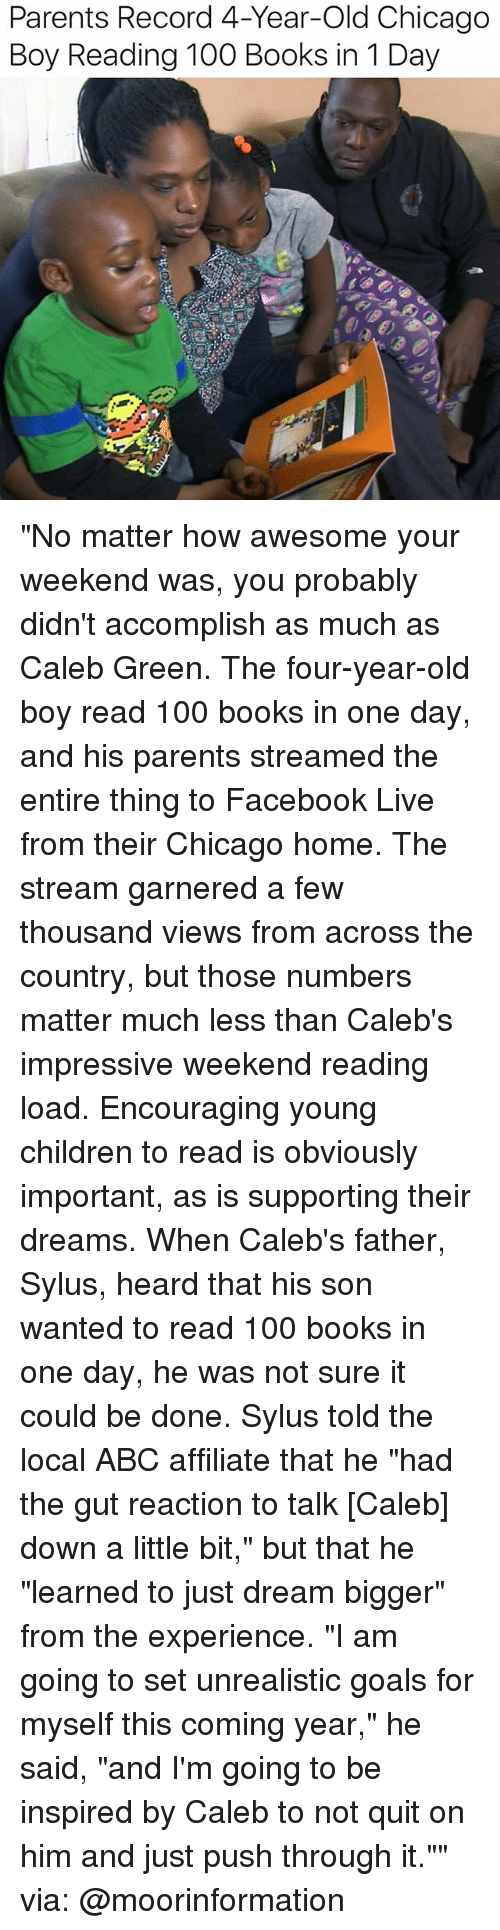 """Abc, Anaconda, and Books: Parents Record 4-Year-Old Chicago  Boy Reading 100 Books in 1 Day """"No matter how awesome your weekend was, you probably didn't accomplish as much as Caleb Green. The four-year-old boy read 100 books in one day, and his parents streamed the entire thing to Facebook Live from their Chicago home. The stream garnered a few thousand views from across the country, but those numbers matter much less than Caleb's impressive weekend reading load. Encouraging young children to read is obviously important, as is supporting their dreams. When Caleb's father, Sylus, heard that his son wanted to read 100 books in one day, he was not sure it could be done. Sylus told the local ABC affiliate that he """"had the gut reaction to talk [Caleb] down a little bit,"""" but that he """"learned to just dream bigger"""" from the experience. """"I am going to set unrealistic goals for myself this coming year,"""" he said, """"and I'm going to be inspired by Caleb to not quit on him and just push through it."""""""" via: @moorinformation"""